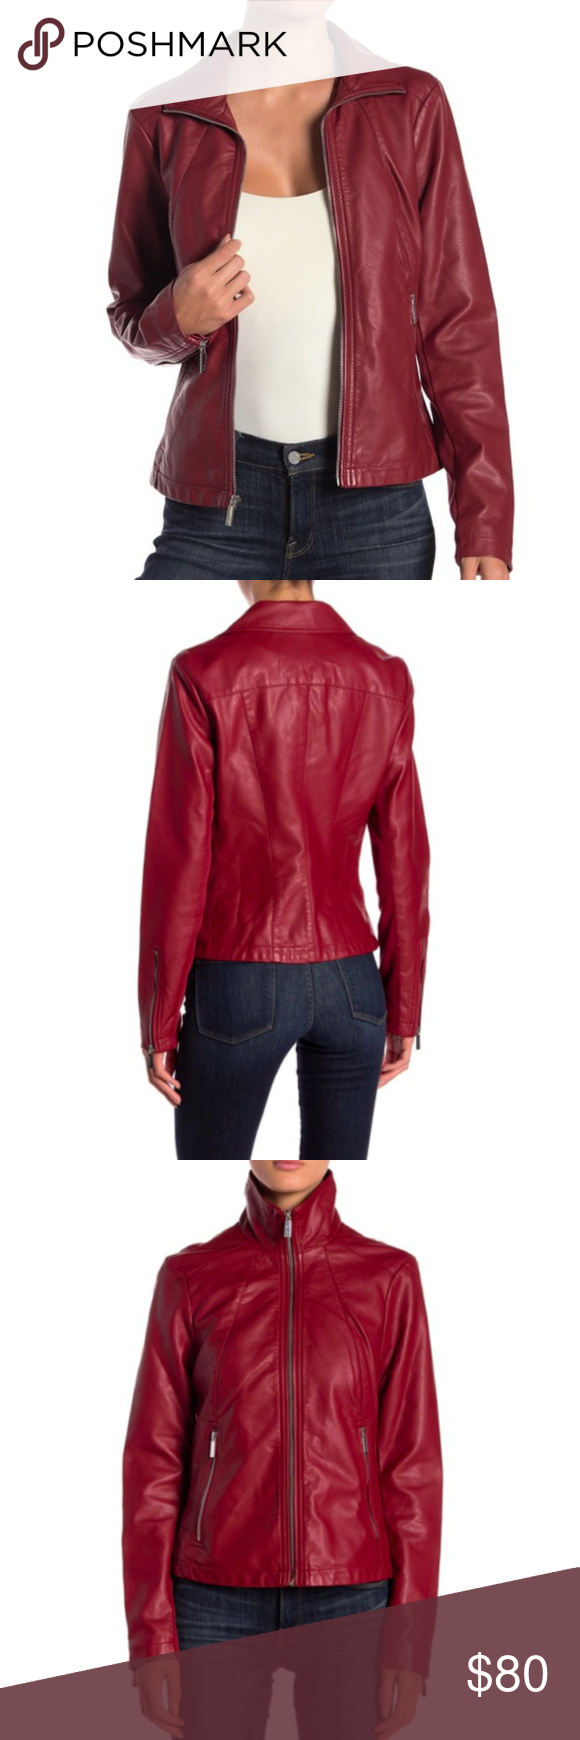 d5560eaf783d Kenneth Cole New York Red Faux Leather Moto Jacket.  shopmycloset  poshmark   fashion  shopping  style  forsale  Kenneth Cole  Jackets   Blazers